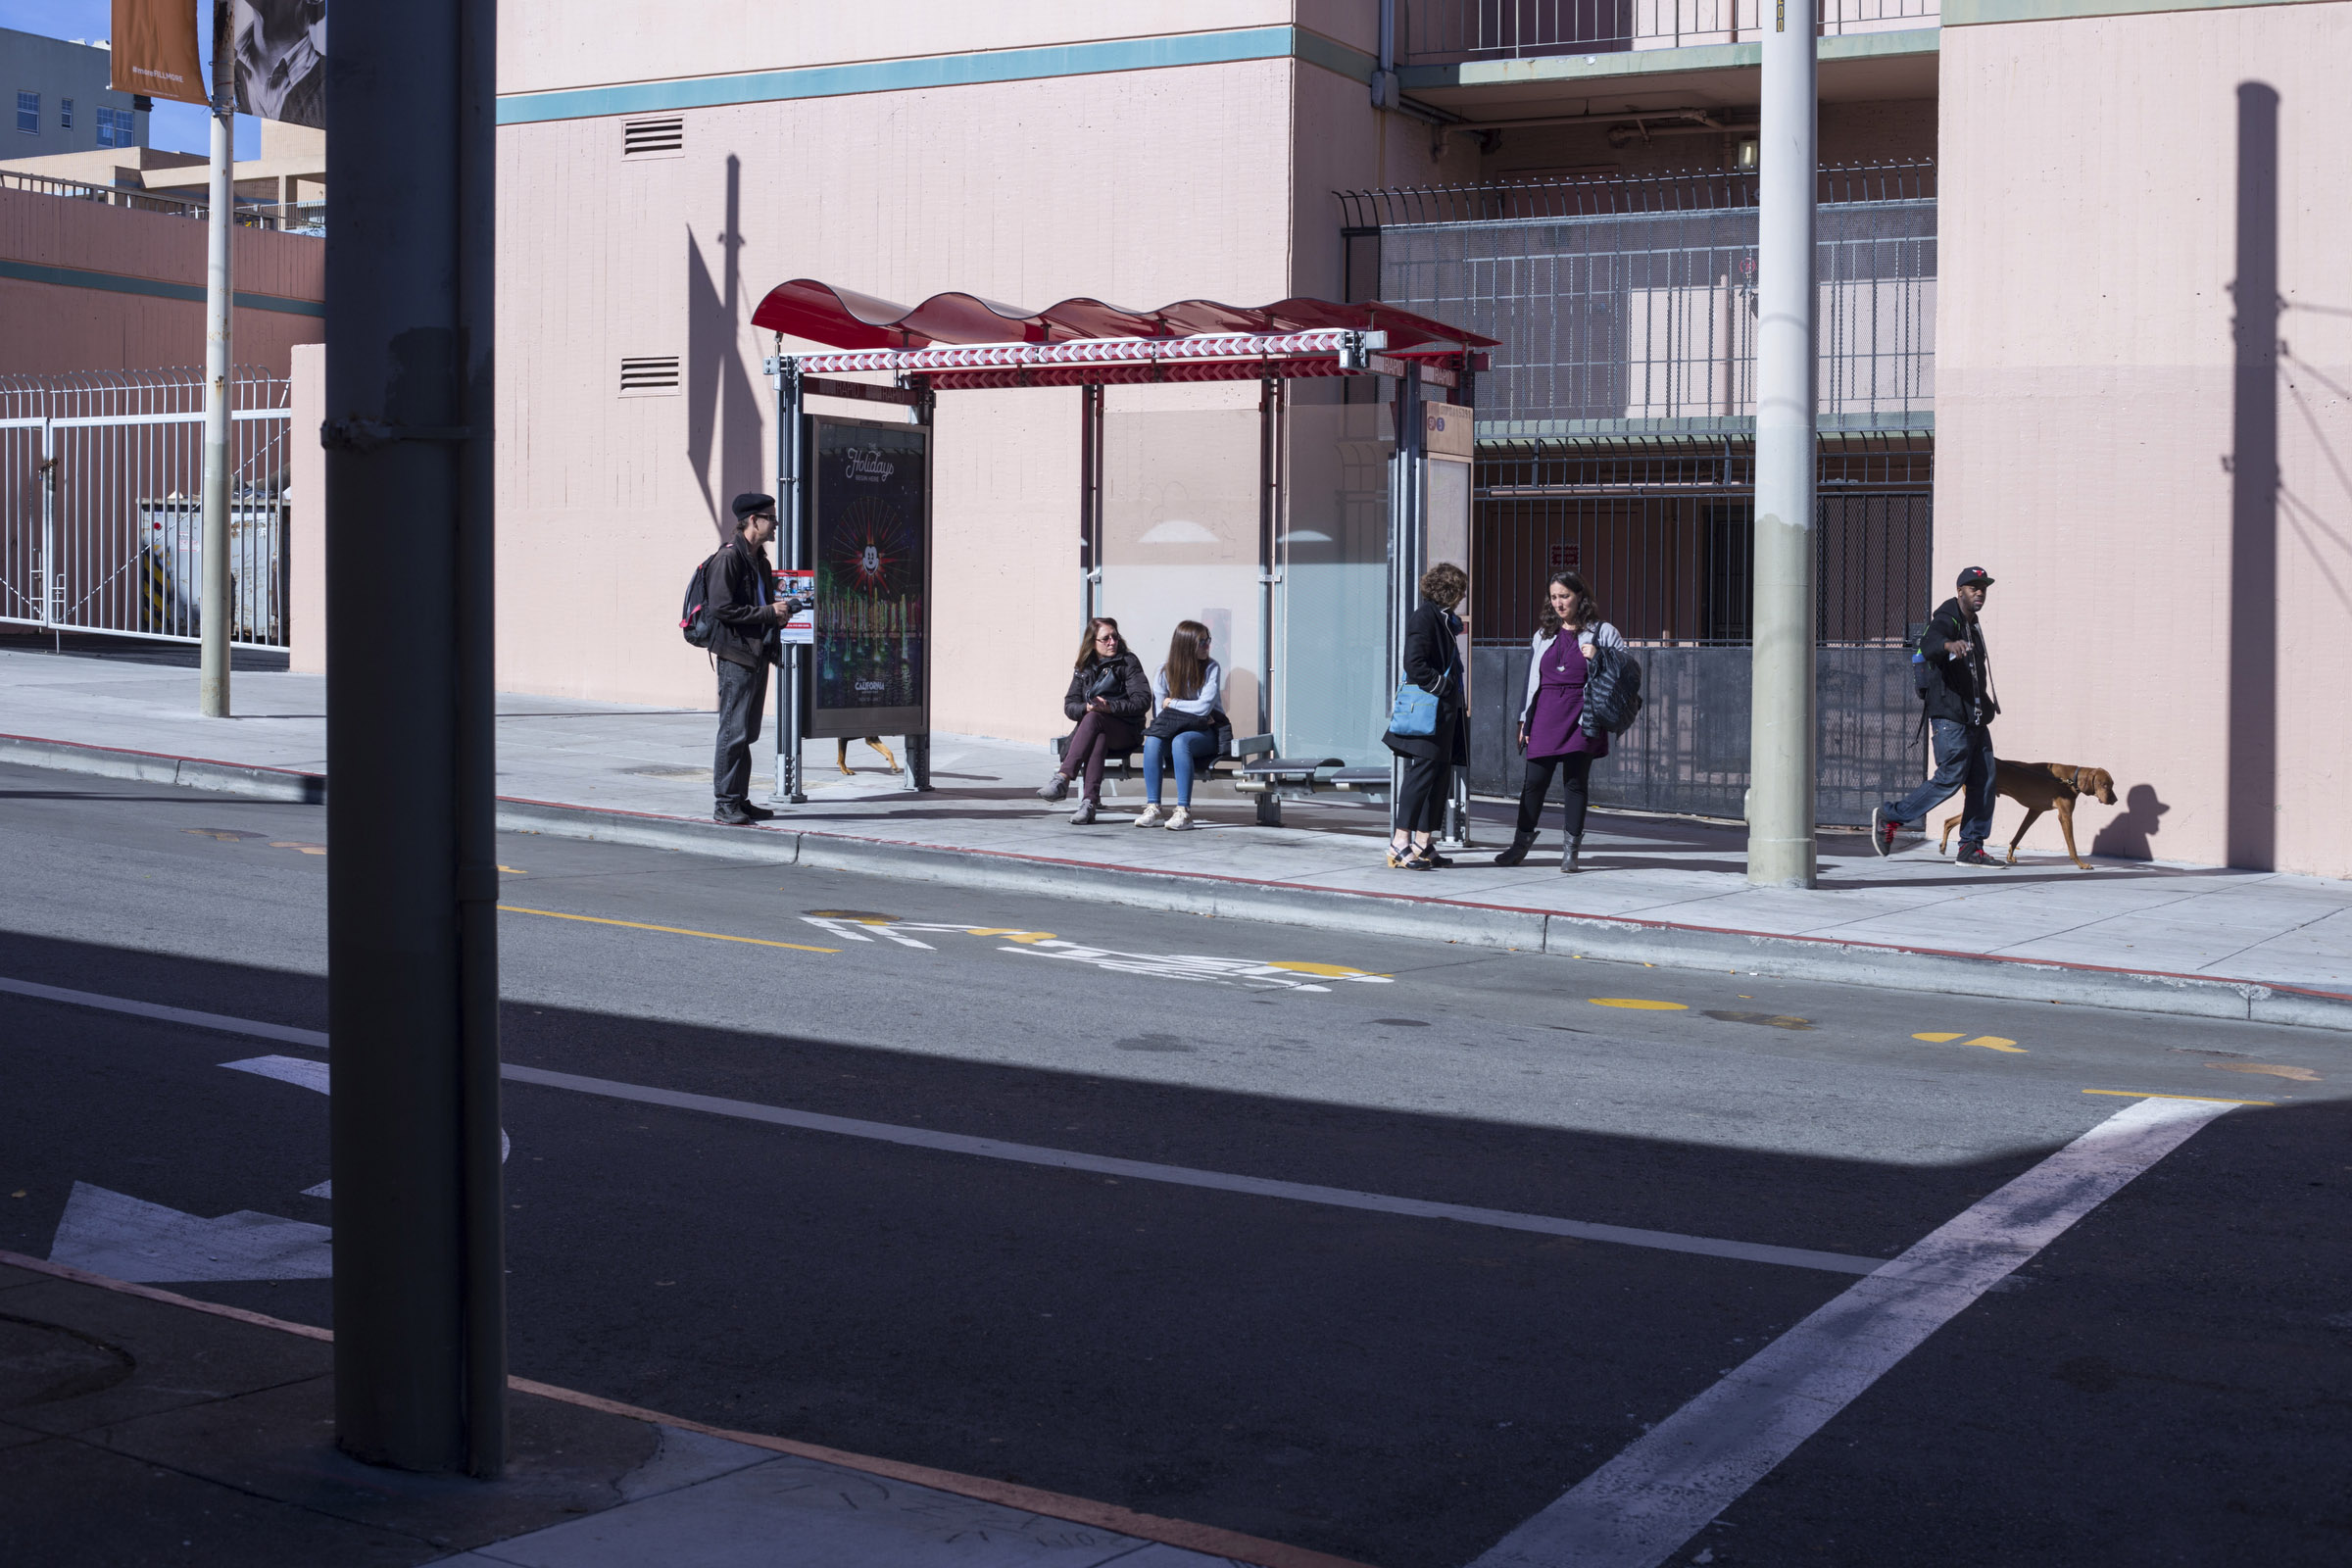 People wait for a bus in the Fillmore District of San Francisco, California, on Tuesday, November 7, 2017. (Photo by Brittany Greeson)